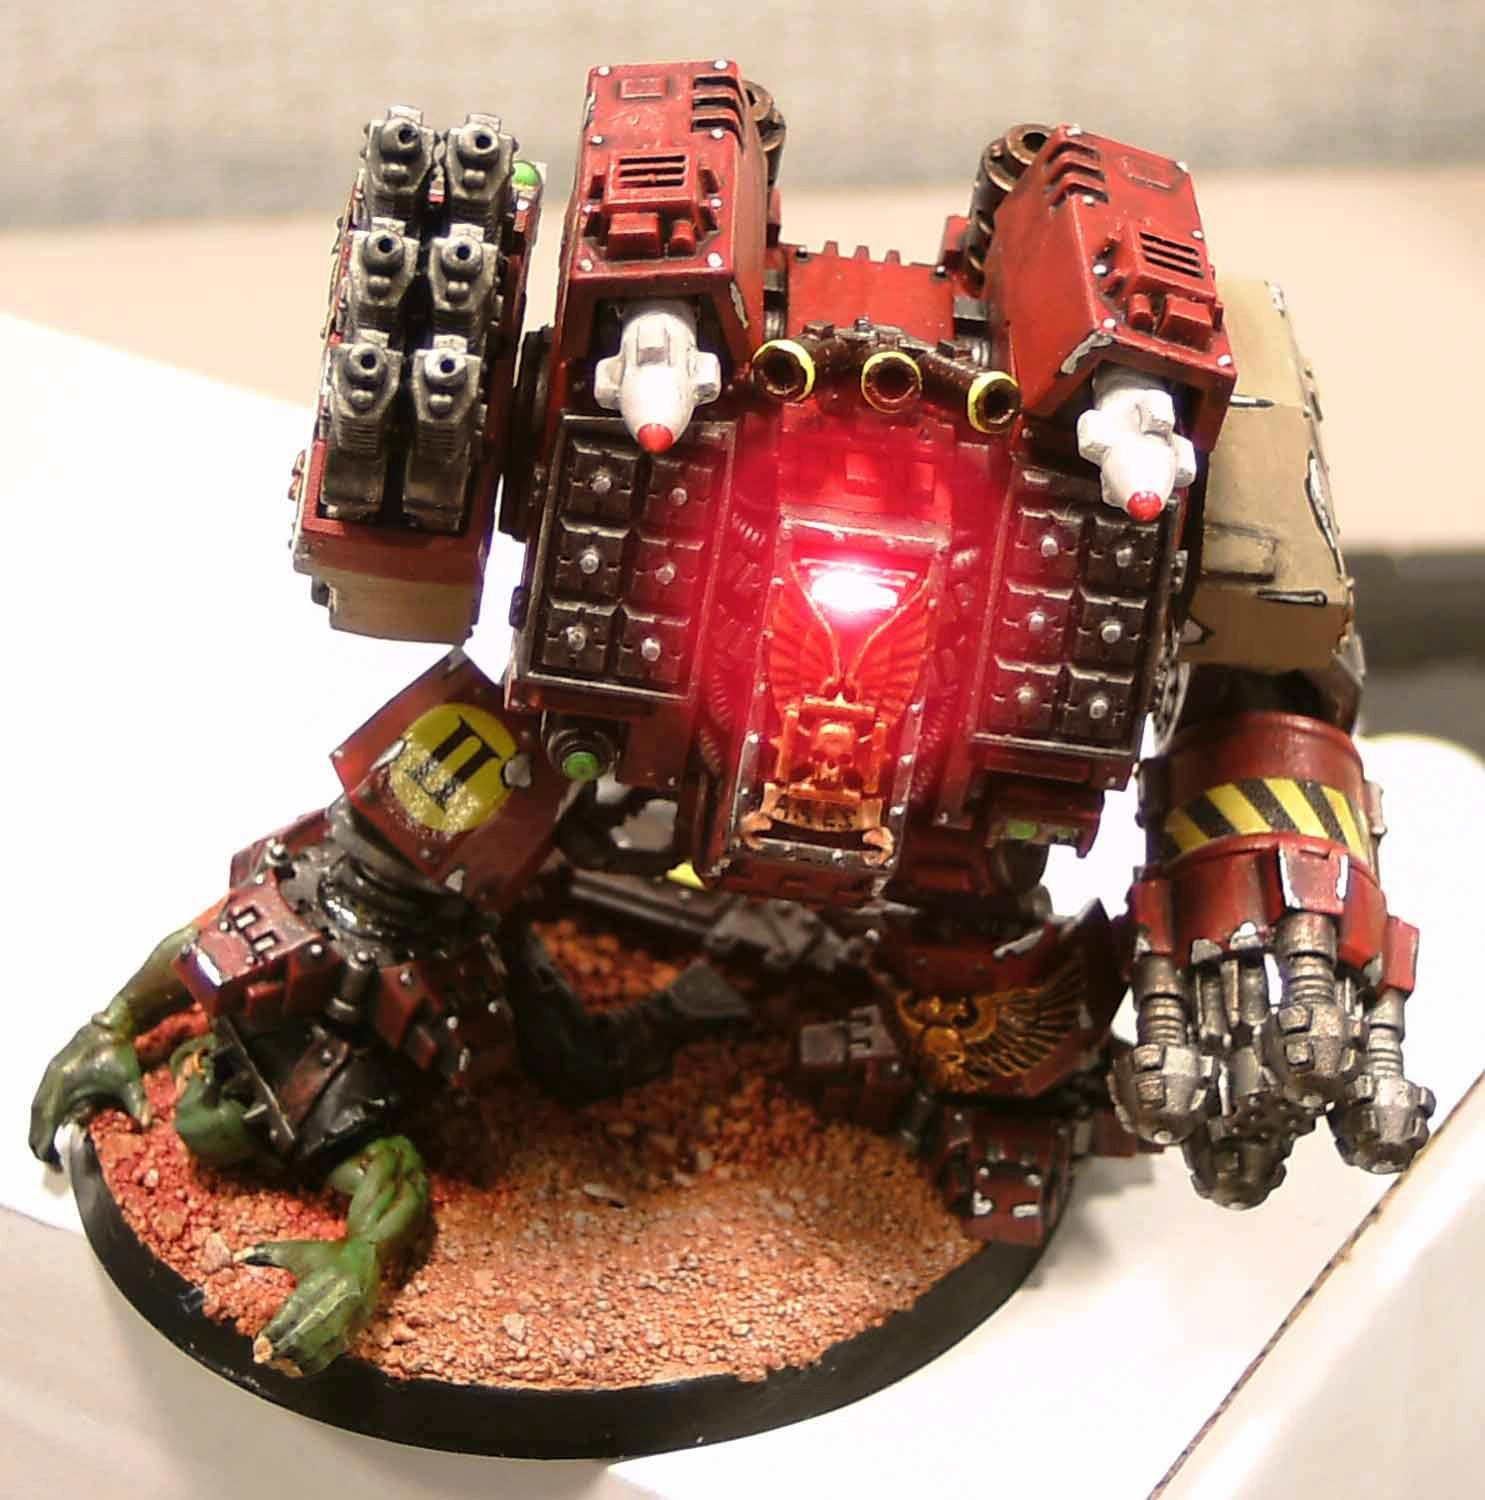 Dreadnought, LED, Over-awesome, Space Marines, Warhammer 40,000